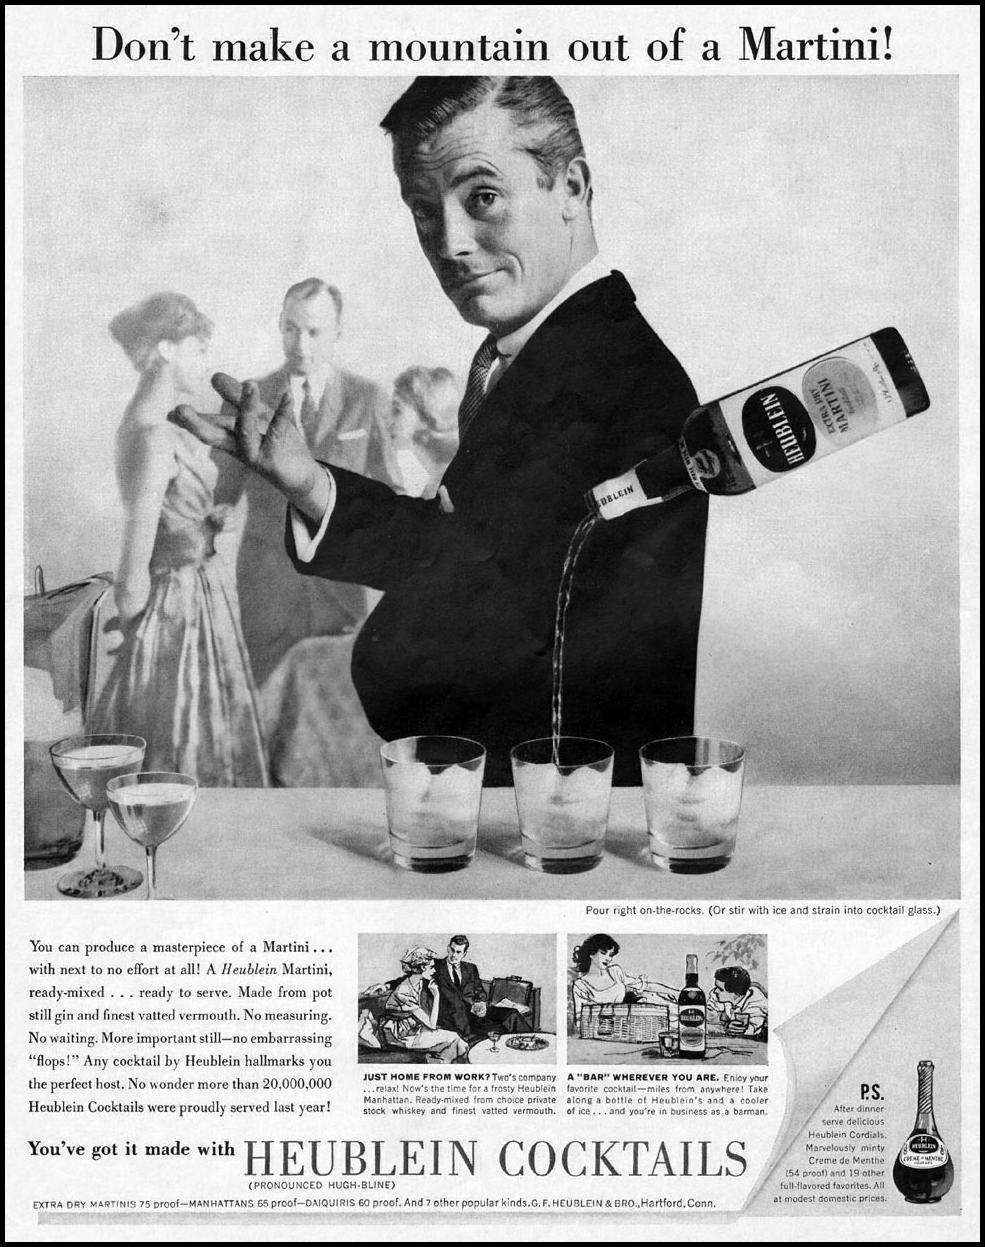 HEUBLEIN COCKTAILS SATURDAY EVENING POST 06/04/1960 p. 42